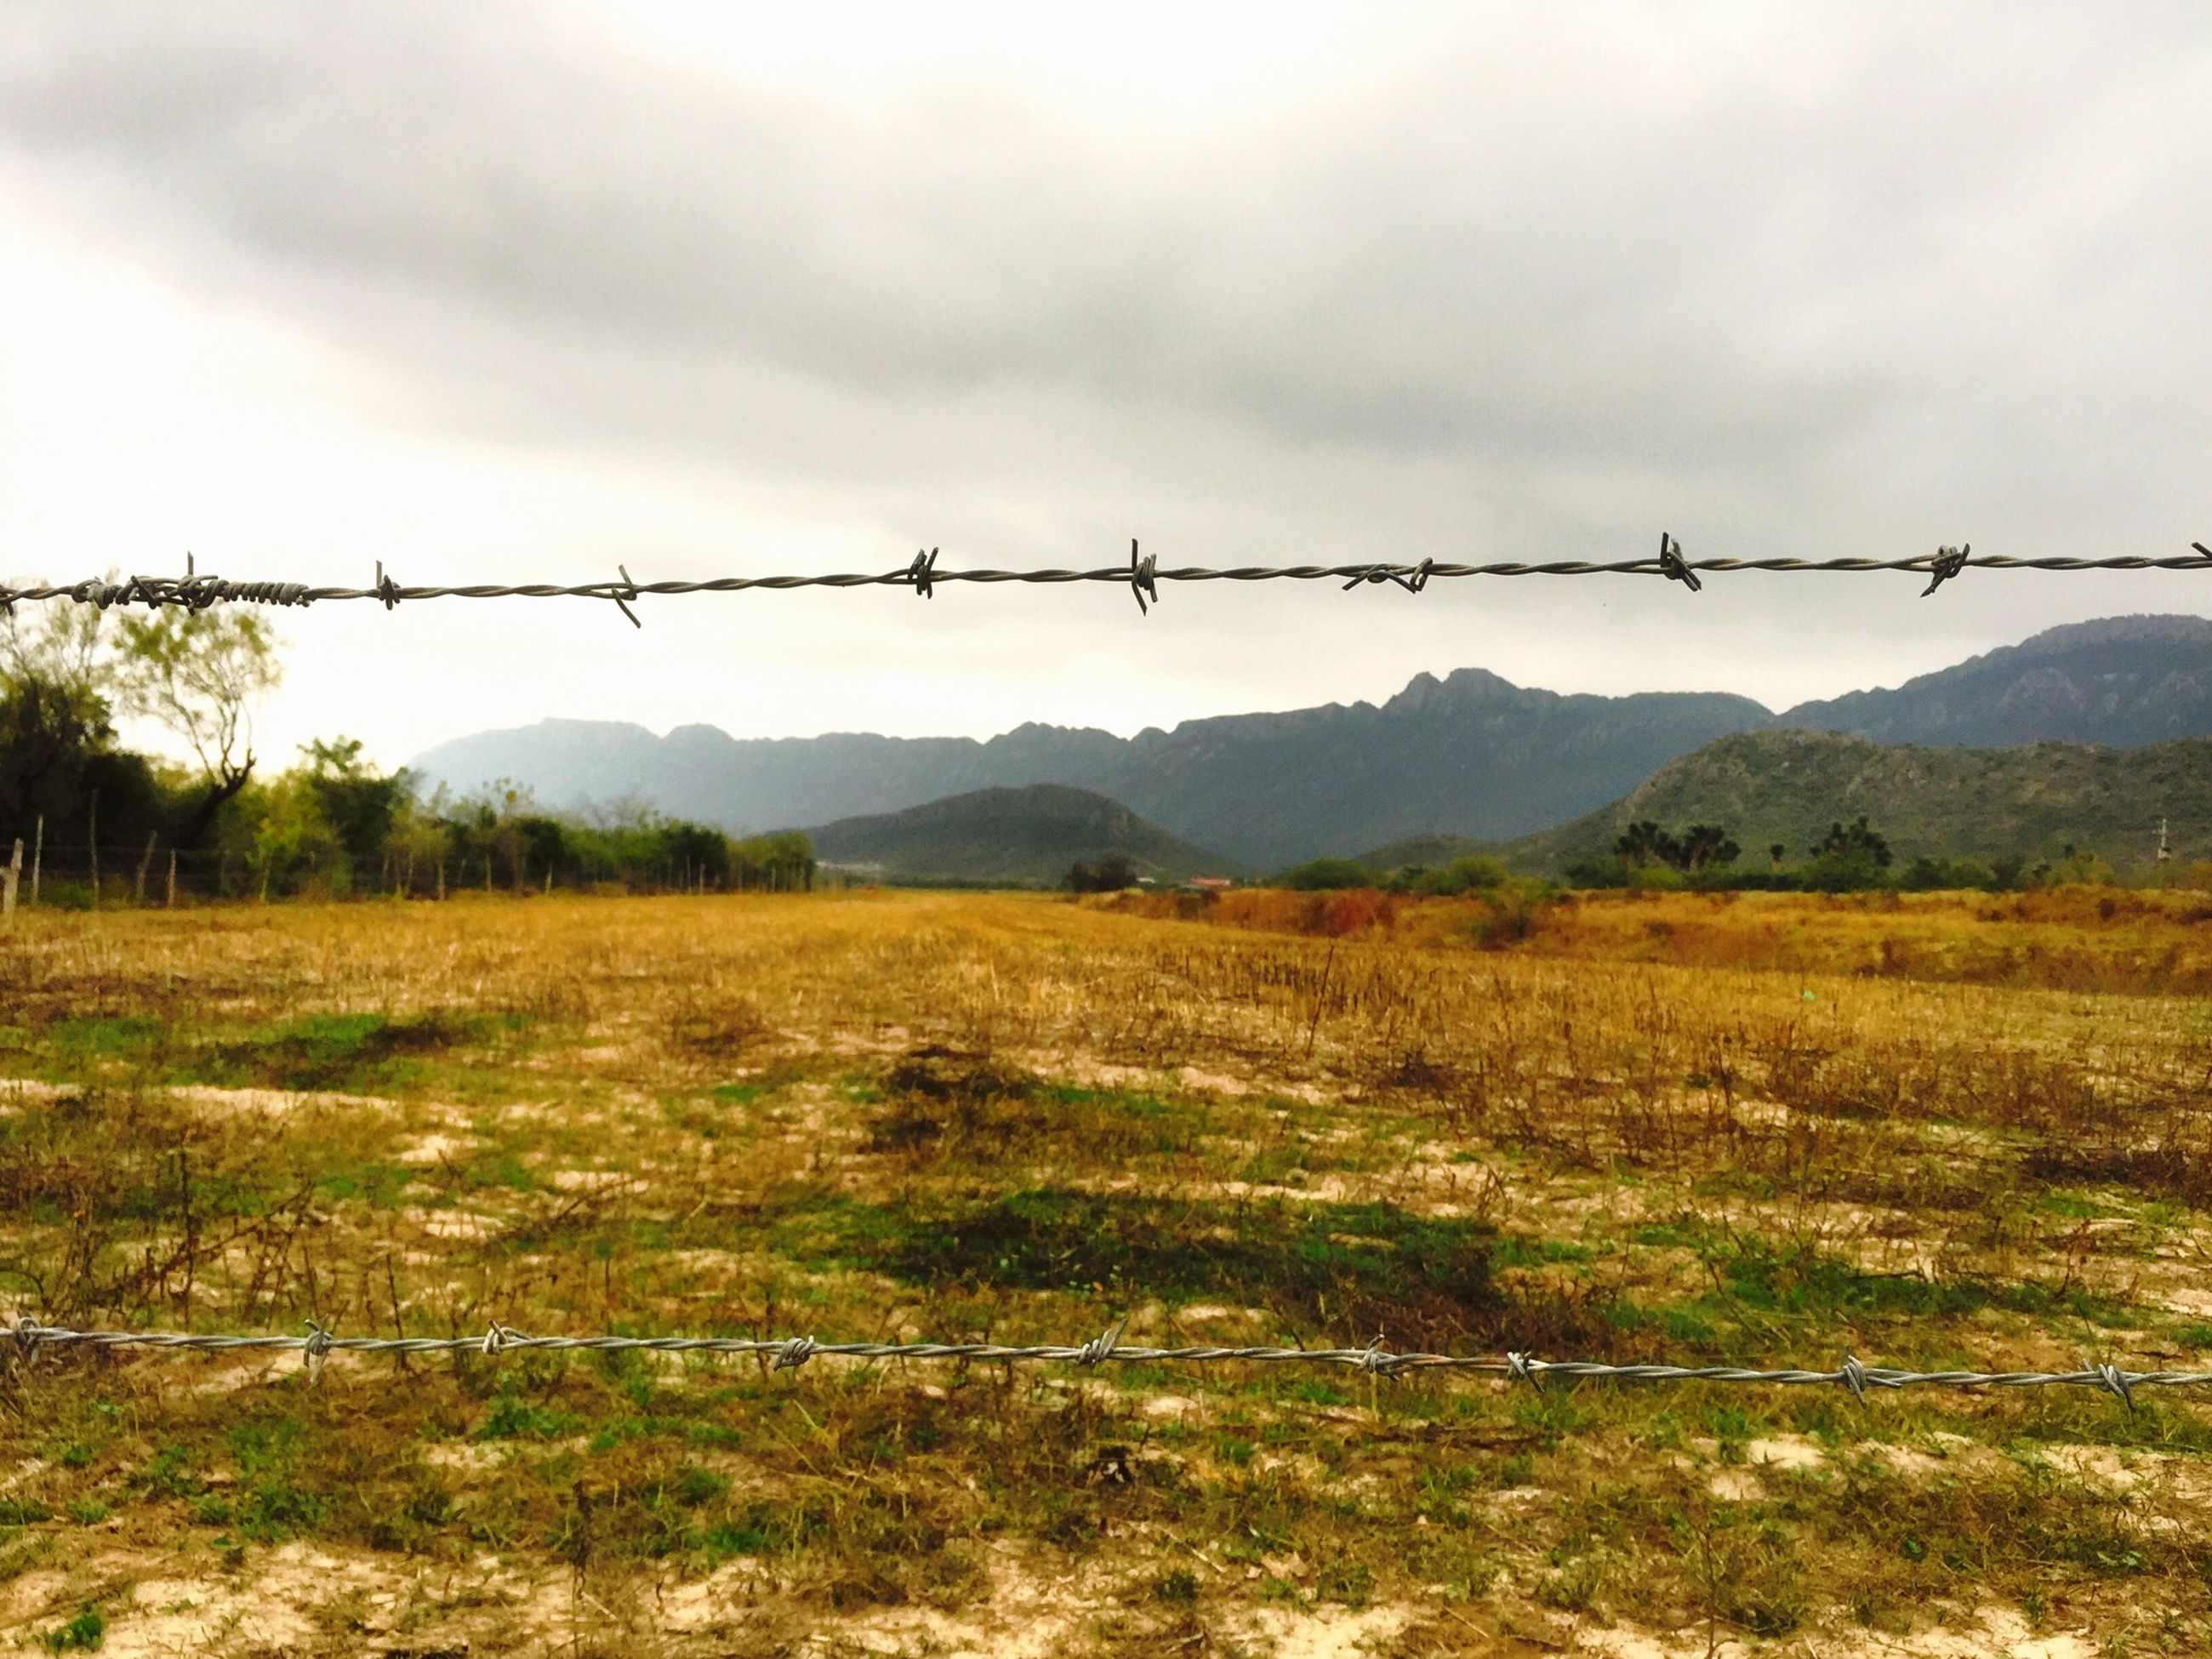 sky, landscape, field, fence, tranquility, tranquil scene, rural scene, barbed wire, scenics, agriculture, nature, protection, cloud - sky, safety, beauty in nature, farm, cloud, mountain, plant, outdoors